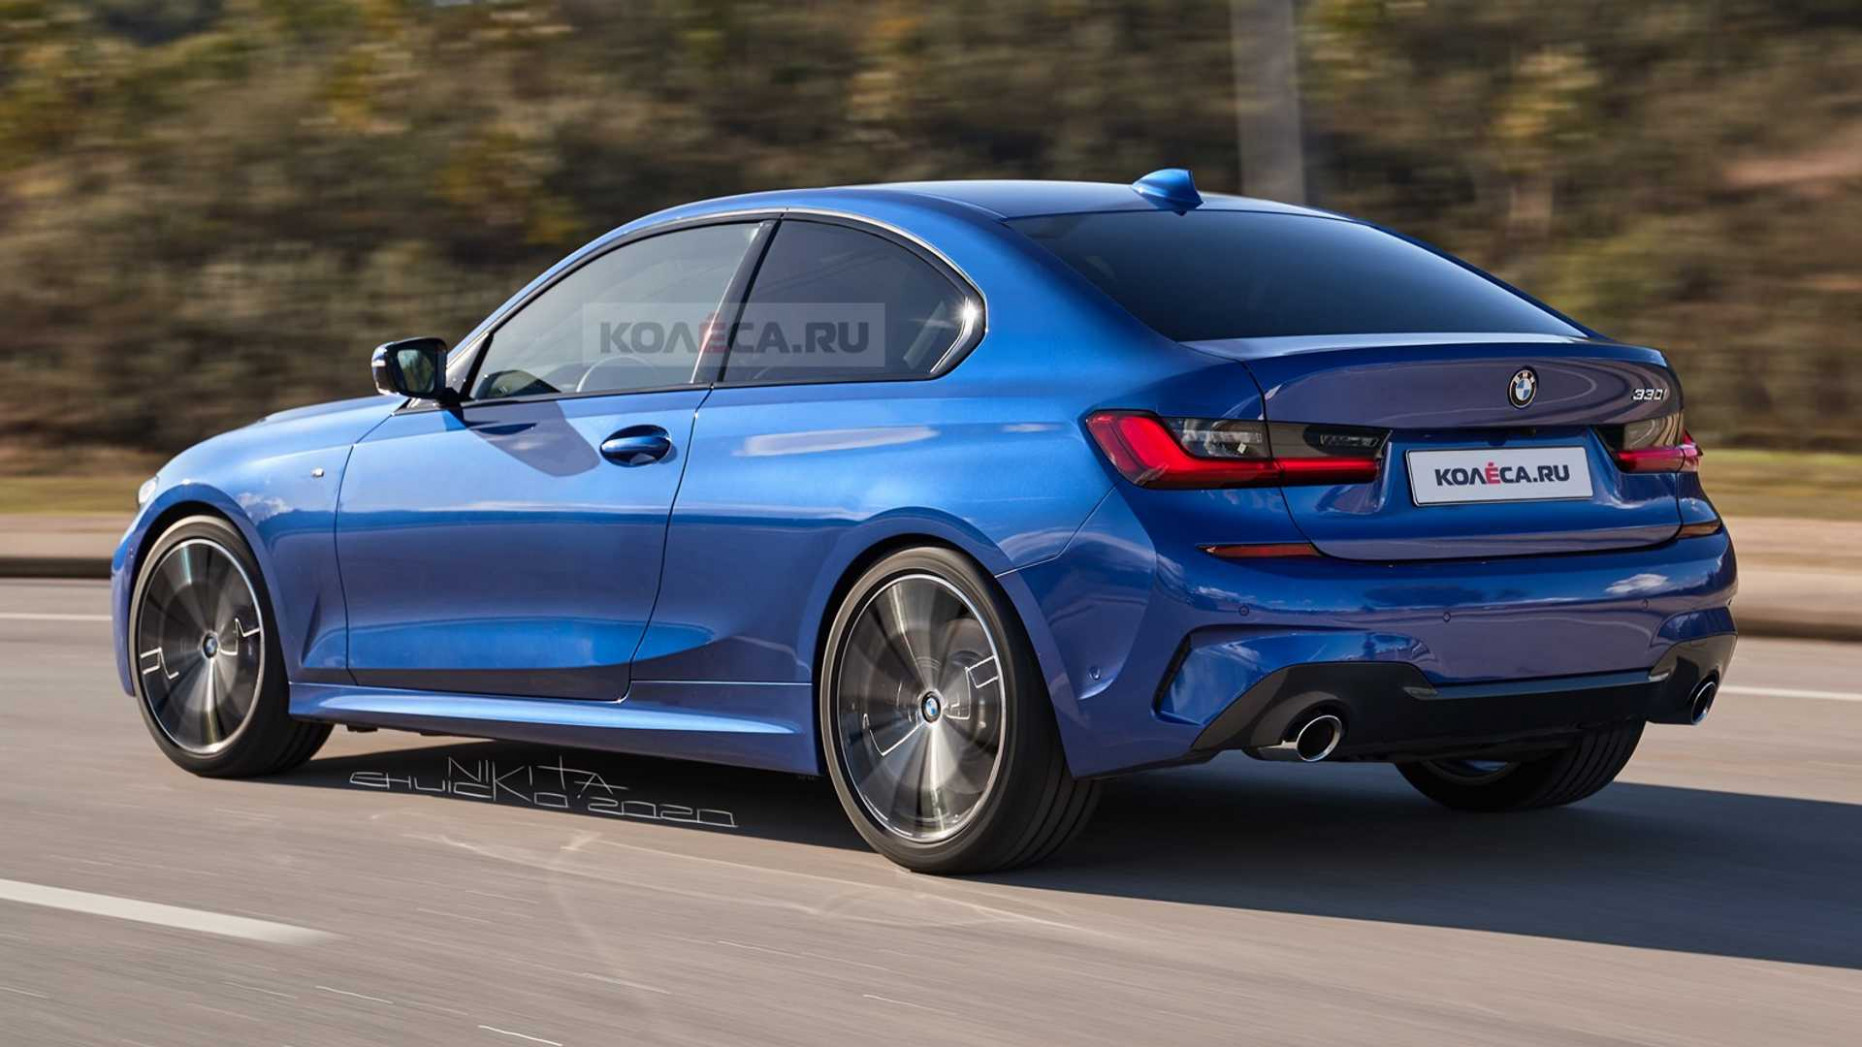 G8 BMW 8 Series Compact rendered: perfect 8 Series replacement? - bmw g20 2020